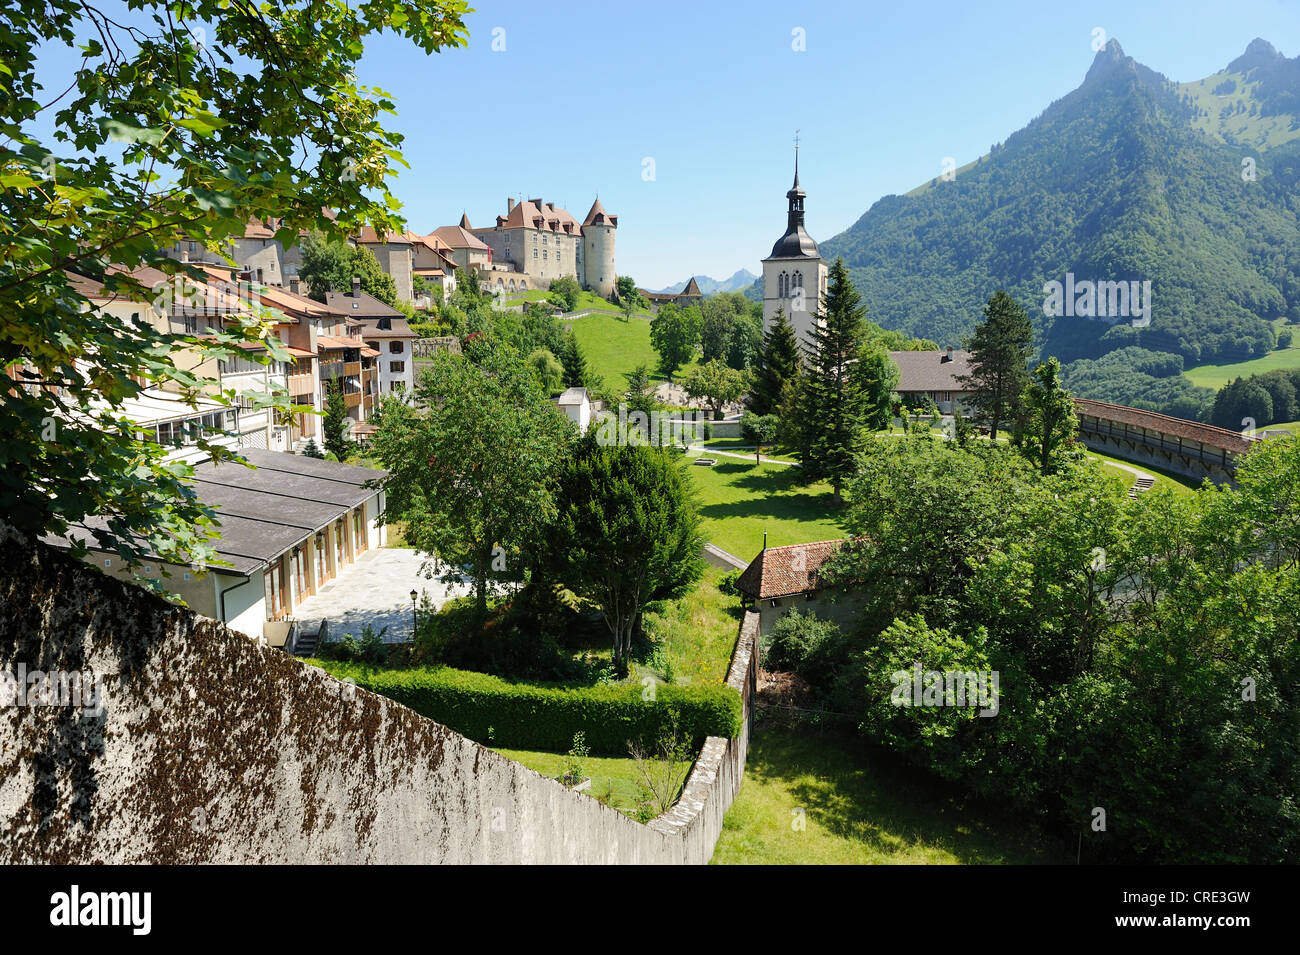 Old city walls around the medieval town of Gruyères, Fribourg, Switzerland, Europe - Stock Image